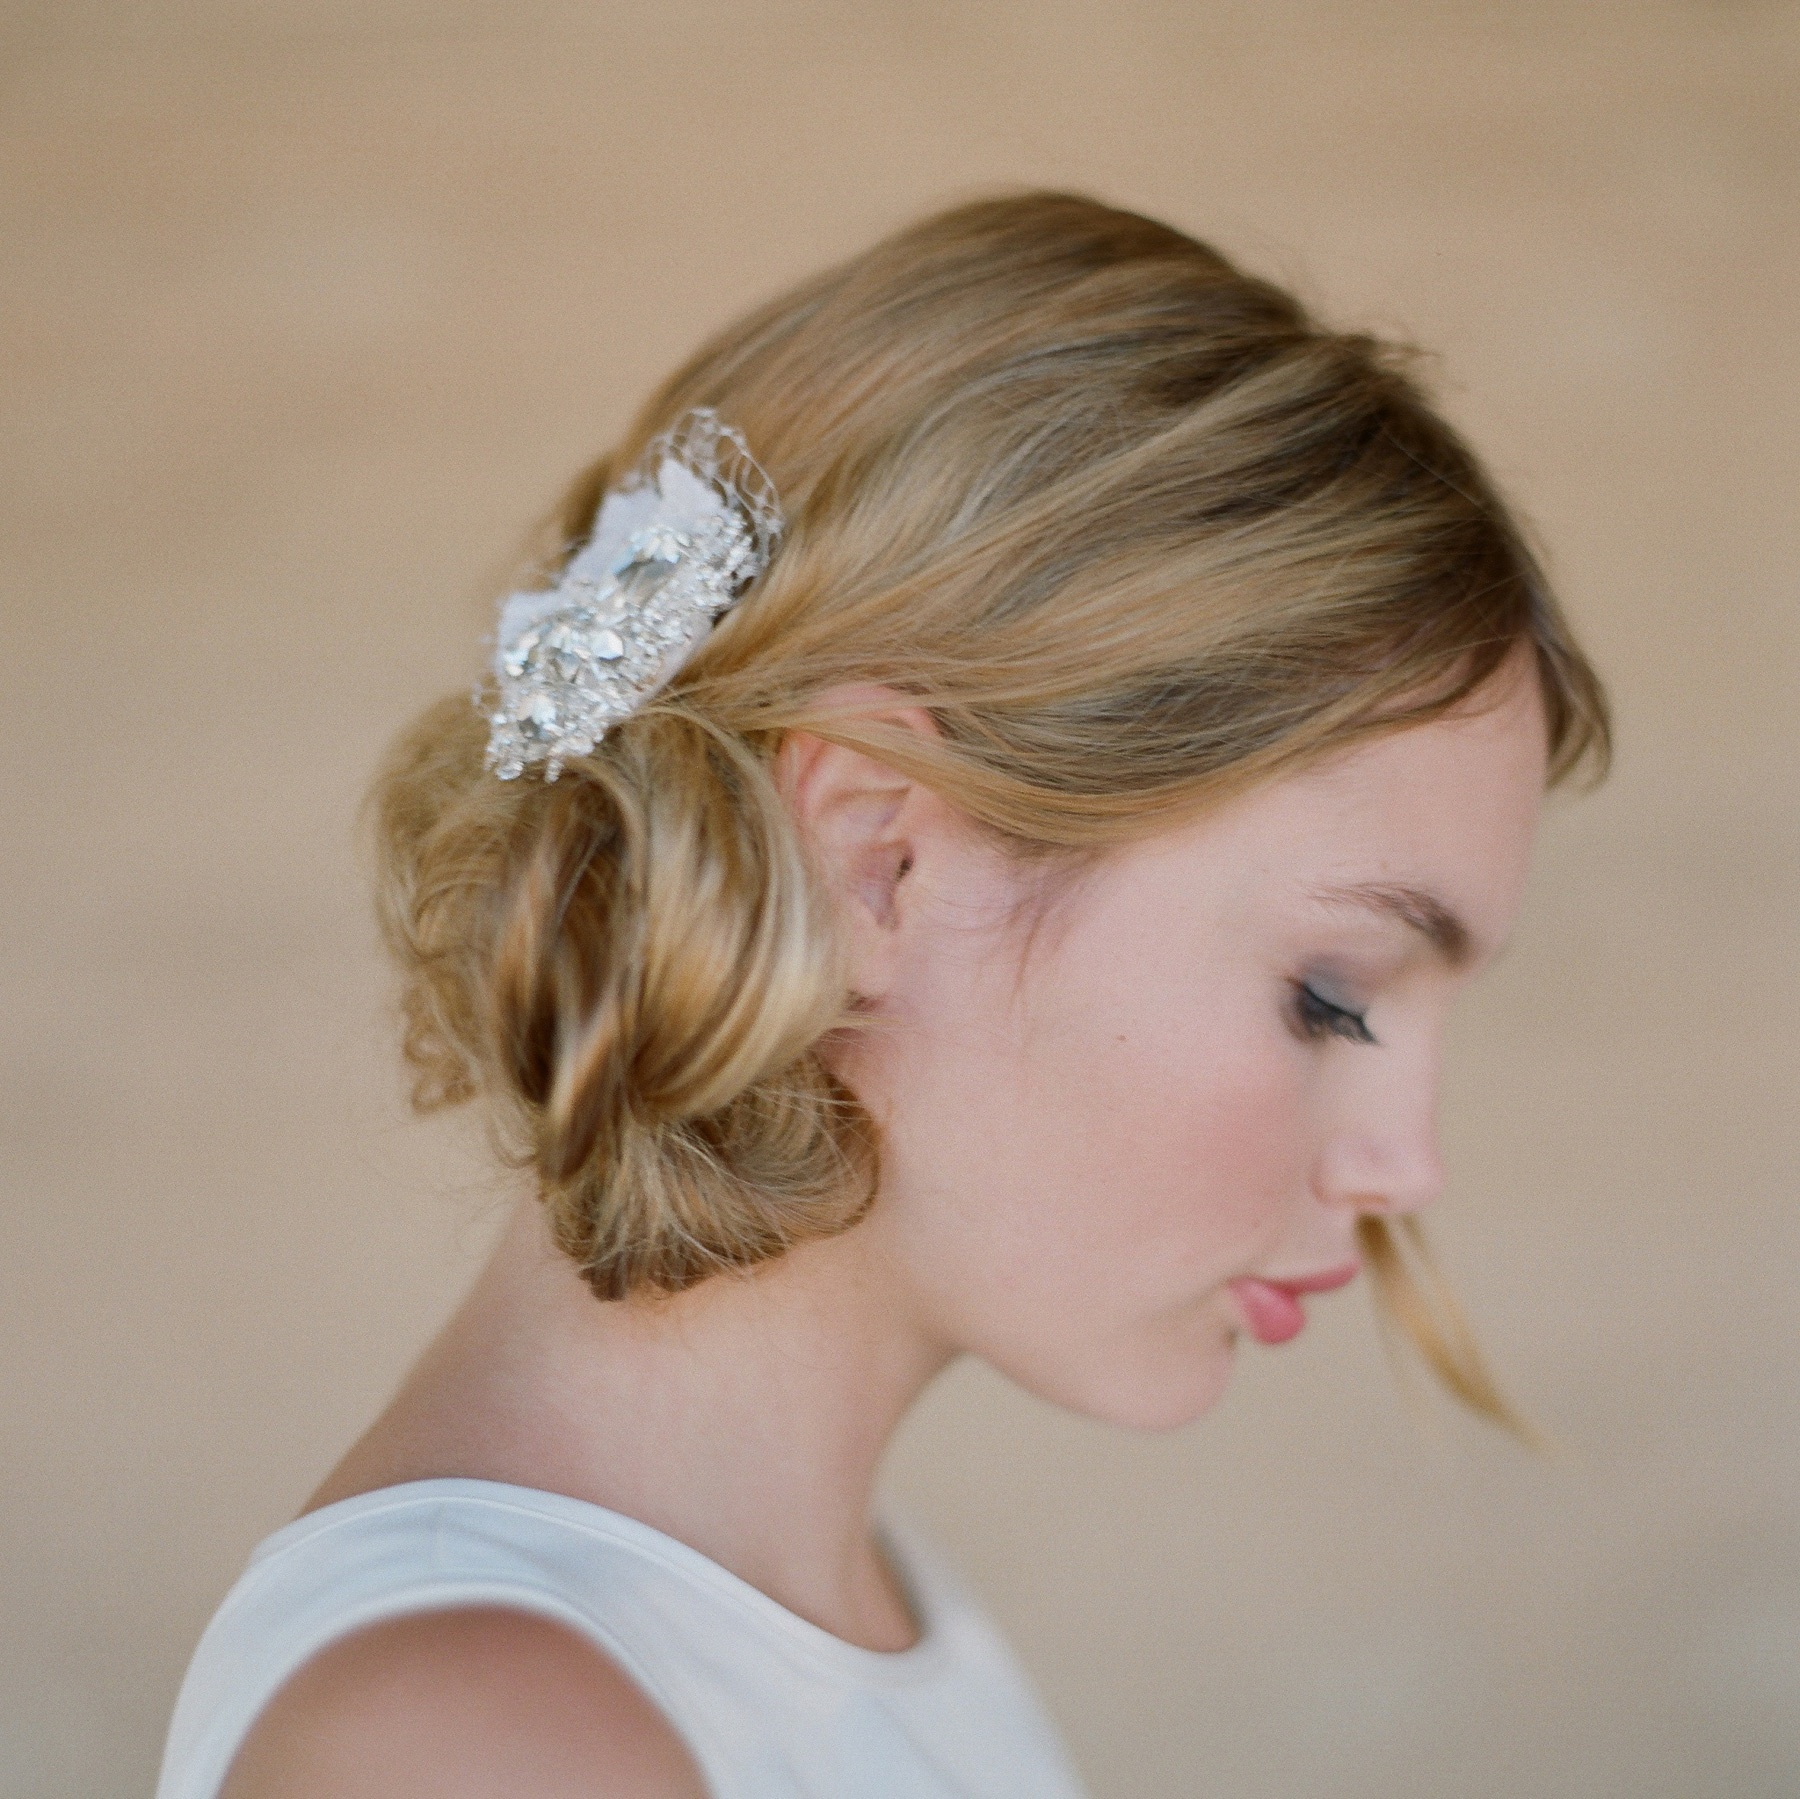 Wedding Hairstyles For Short Hair With Veil And Tiara